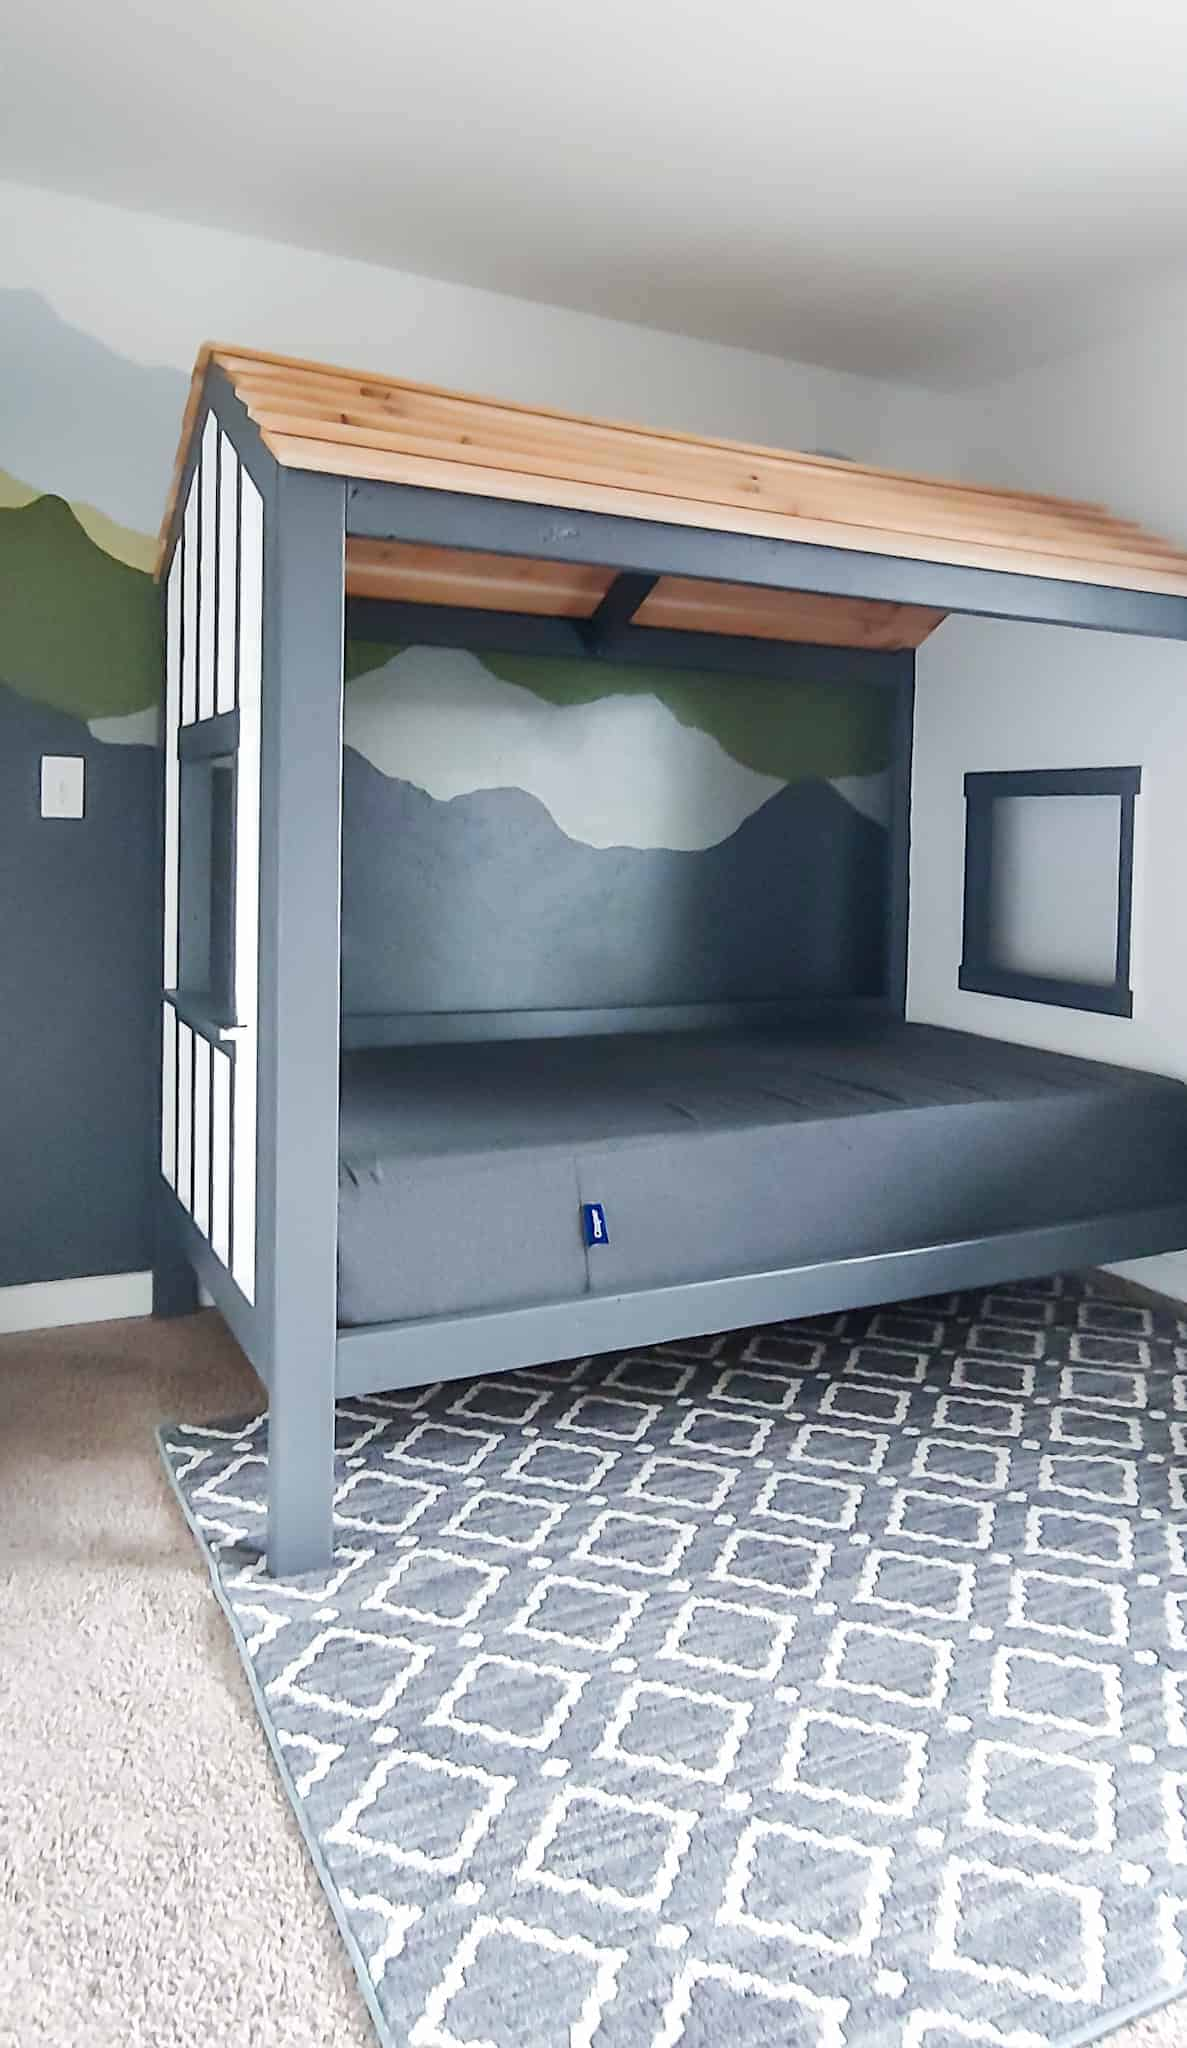 Full view of the DIY cabin bed pushed closely to the wall with mountain mural and the farmhouse carpet